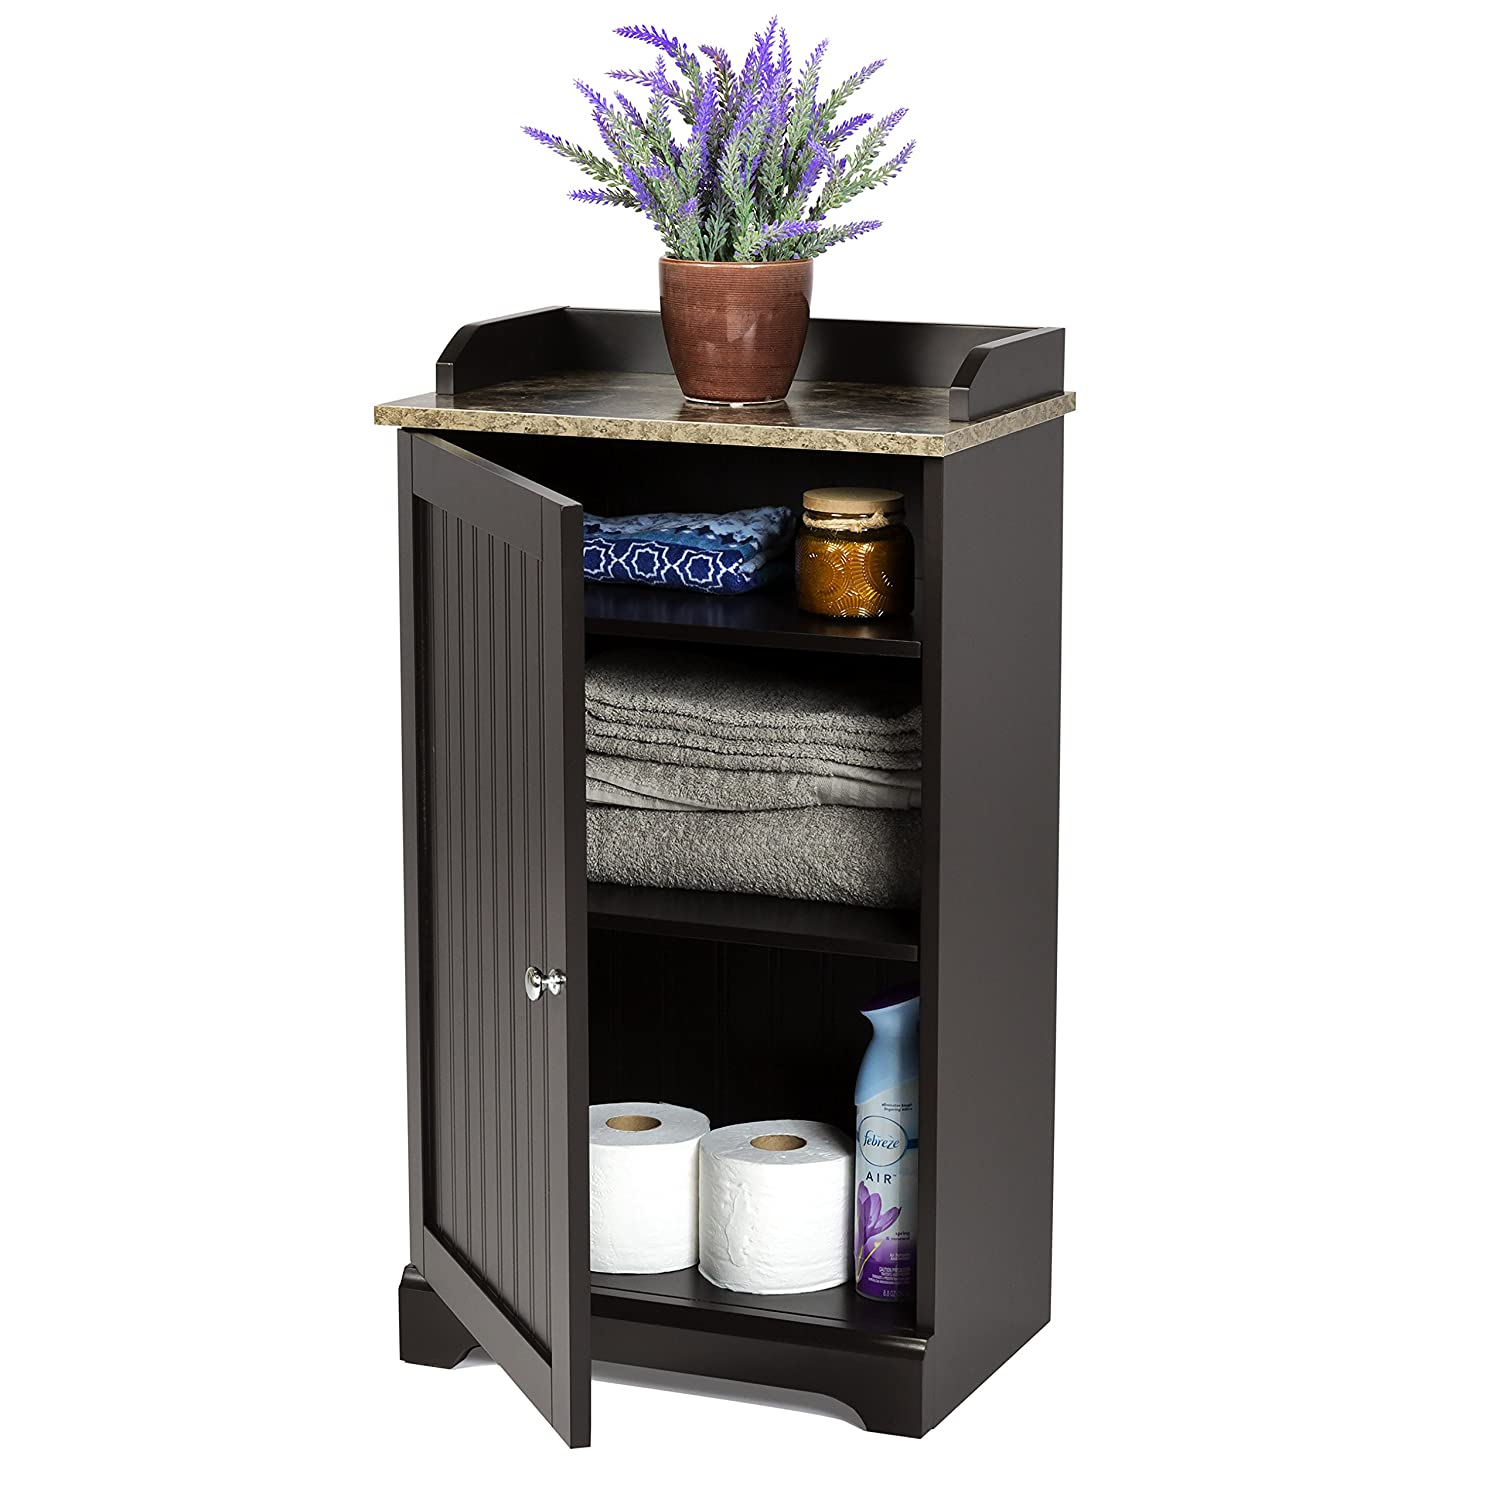 Espresso Brown Best Choice Products Modern Contemporary Home Bathroom Floor Storage Organization Cabinet for Linens Toiletries 2 Adjusting Shelves Towels Versatile Door Soap w// 1 Bottom Shelf